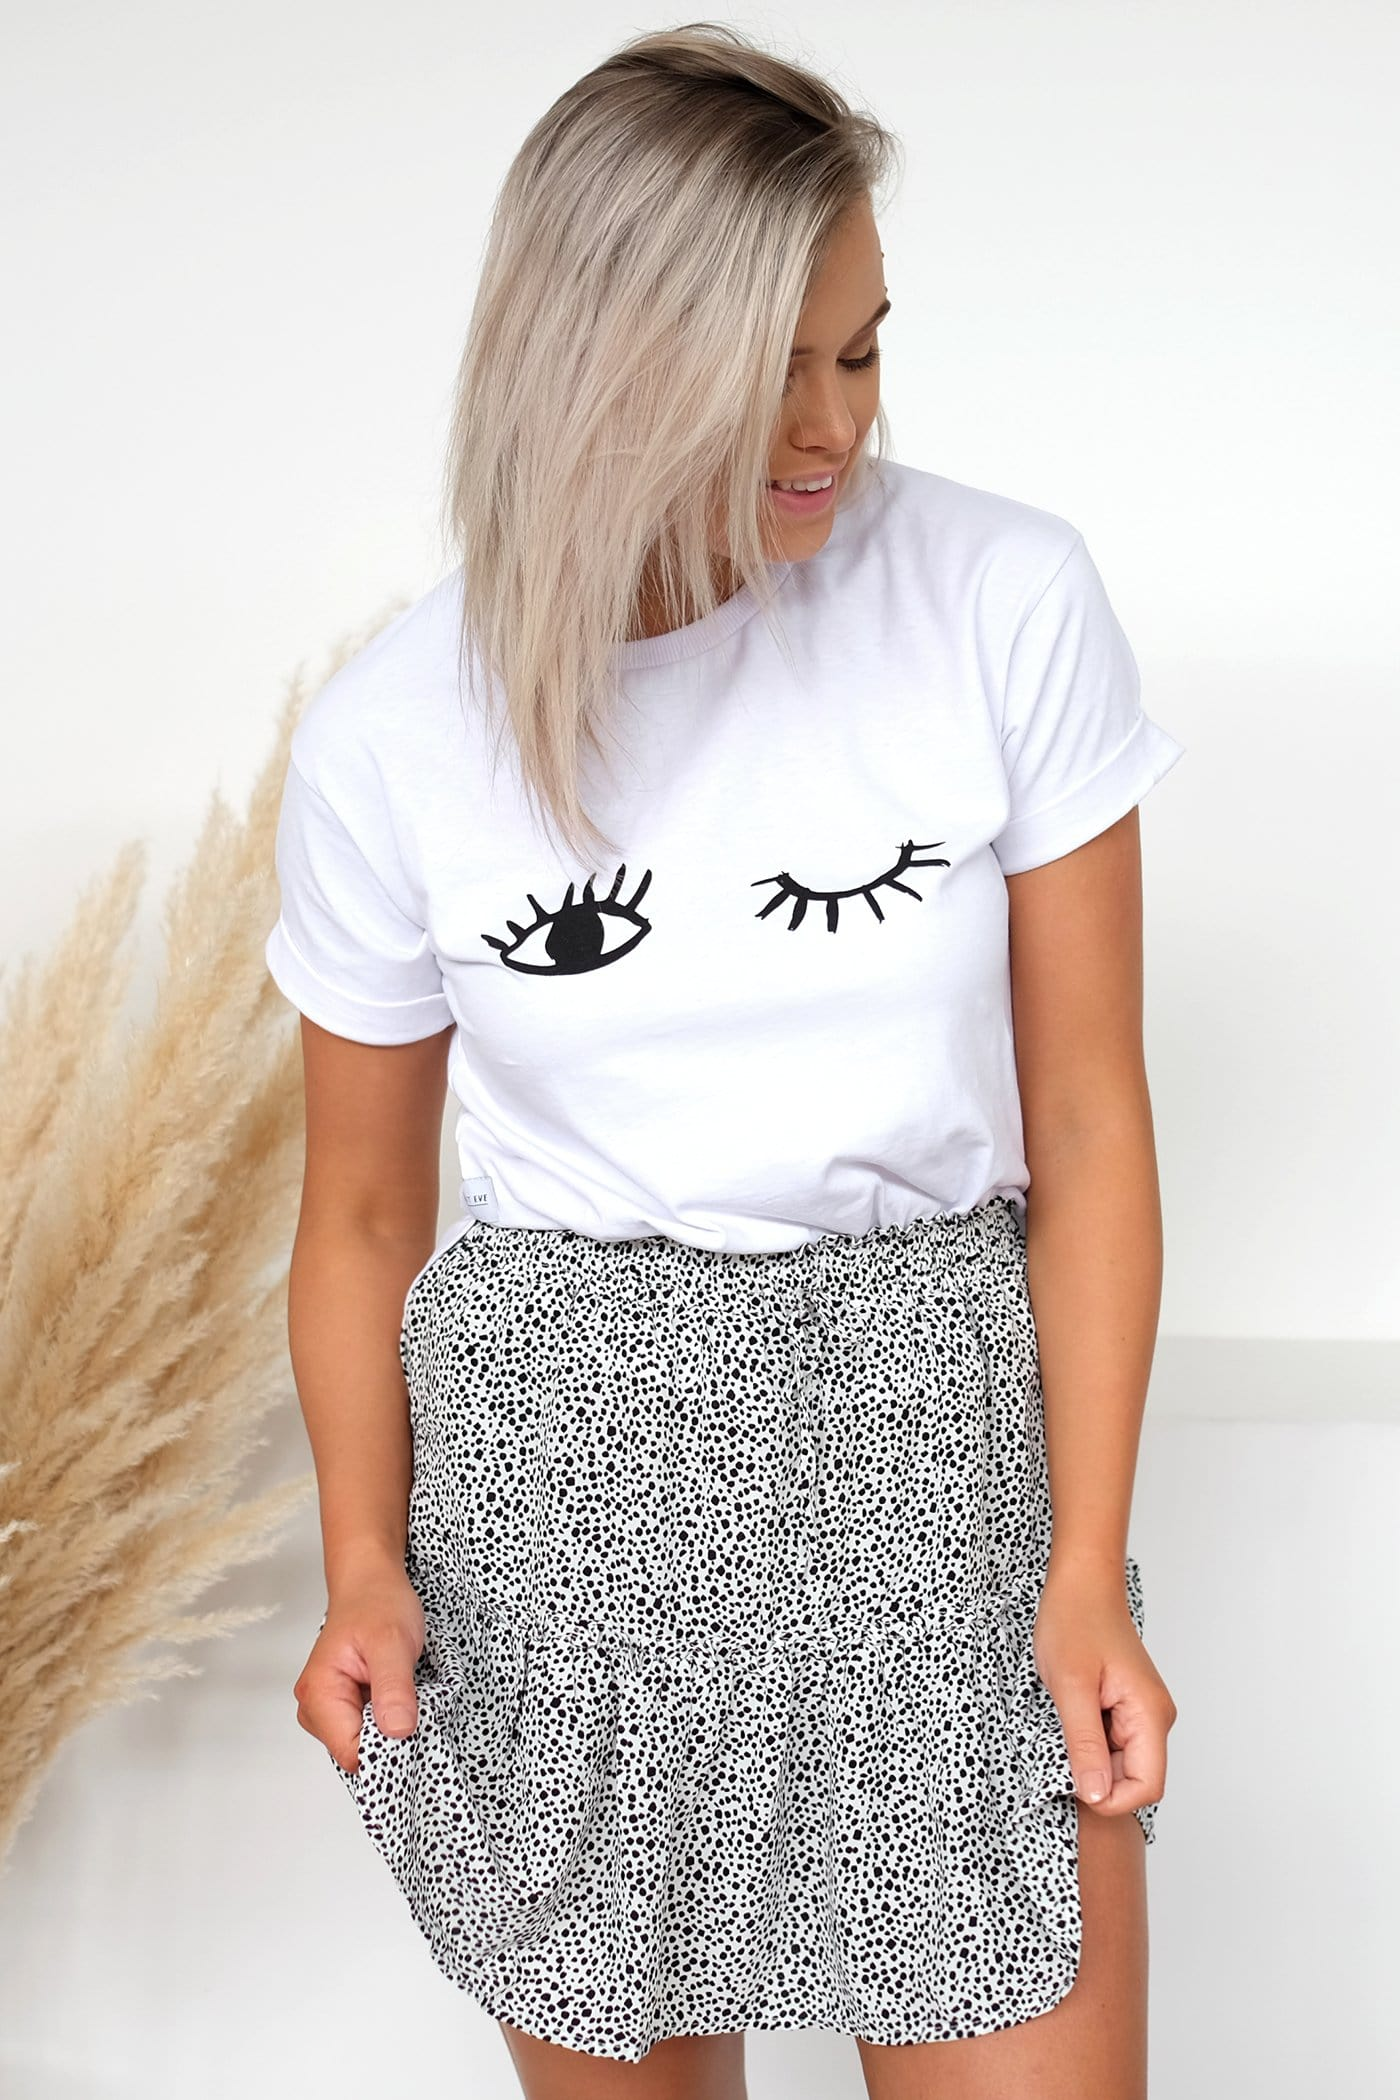 Eyes Up Here Tee White